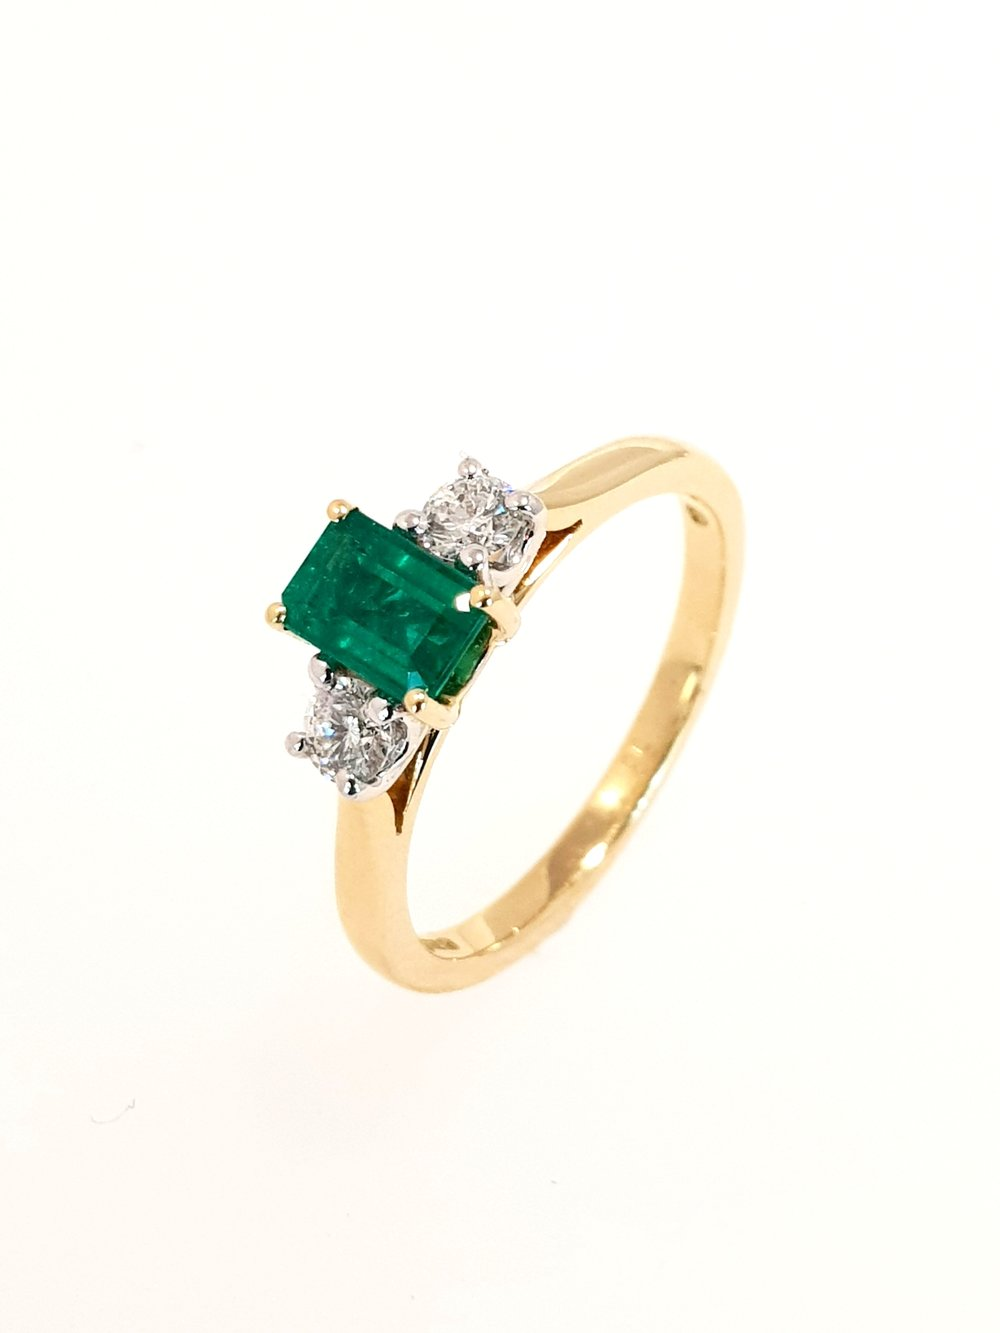 18ct Yellow Gold Emerald(.53ct) & Diamond Ring  Diamond: .23ct, G, Si1  Stock Code: N8986  £2800